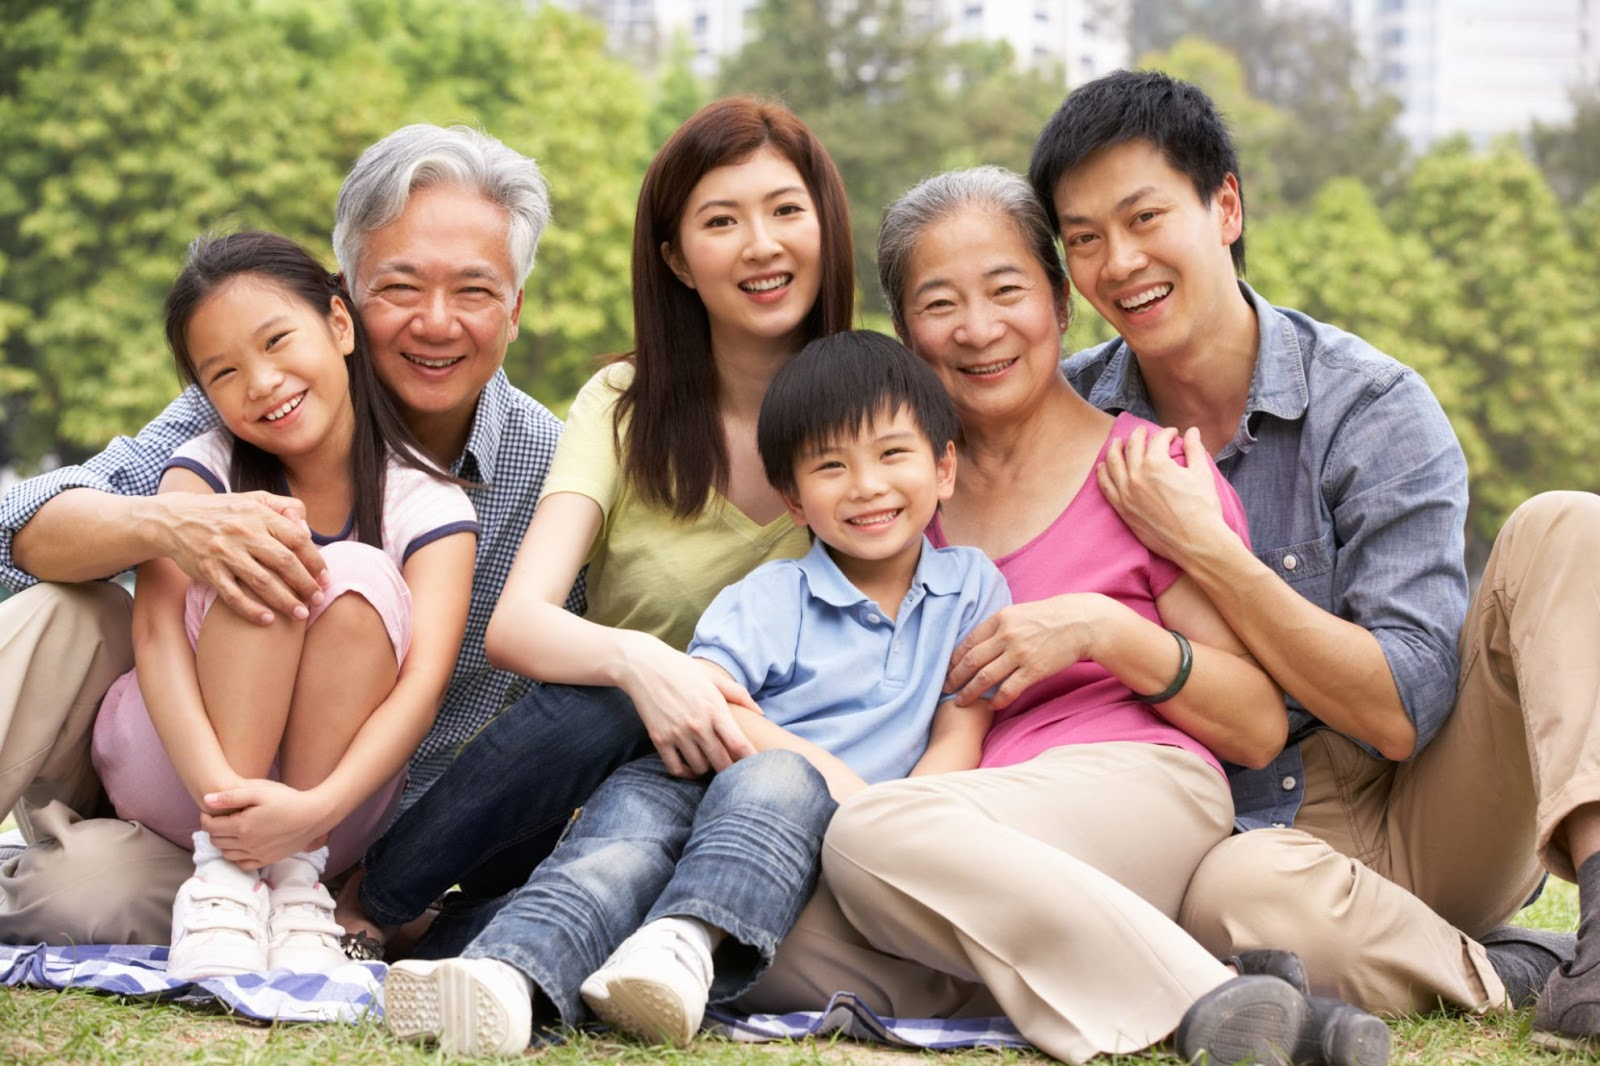 AAJC Provides a Summary of the Reuniting Families Act